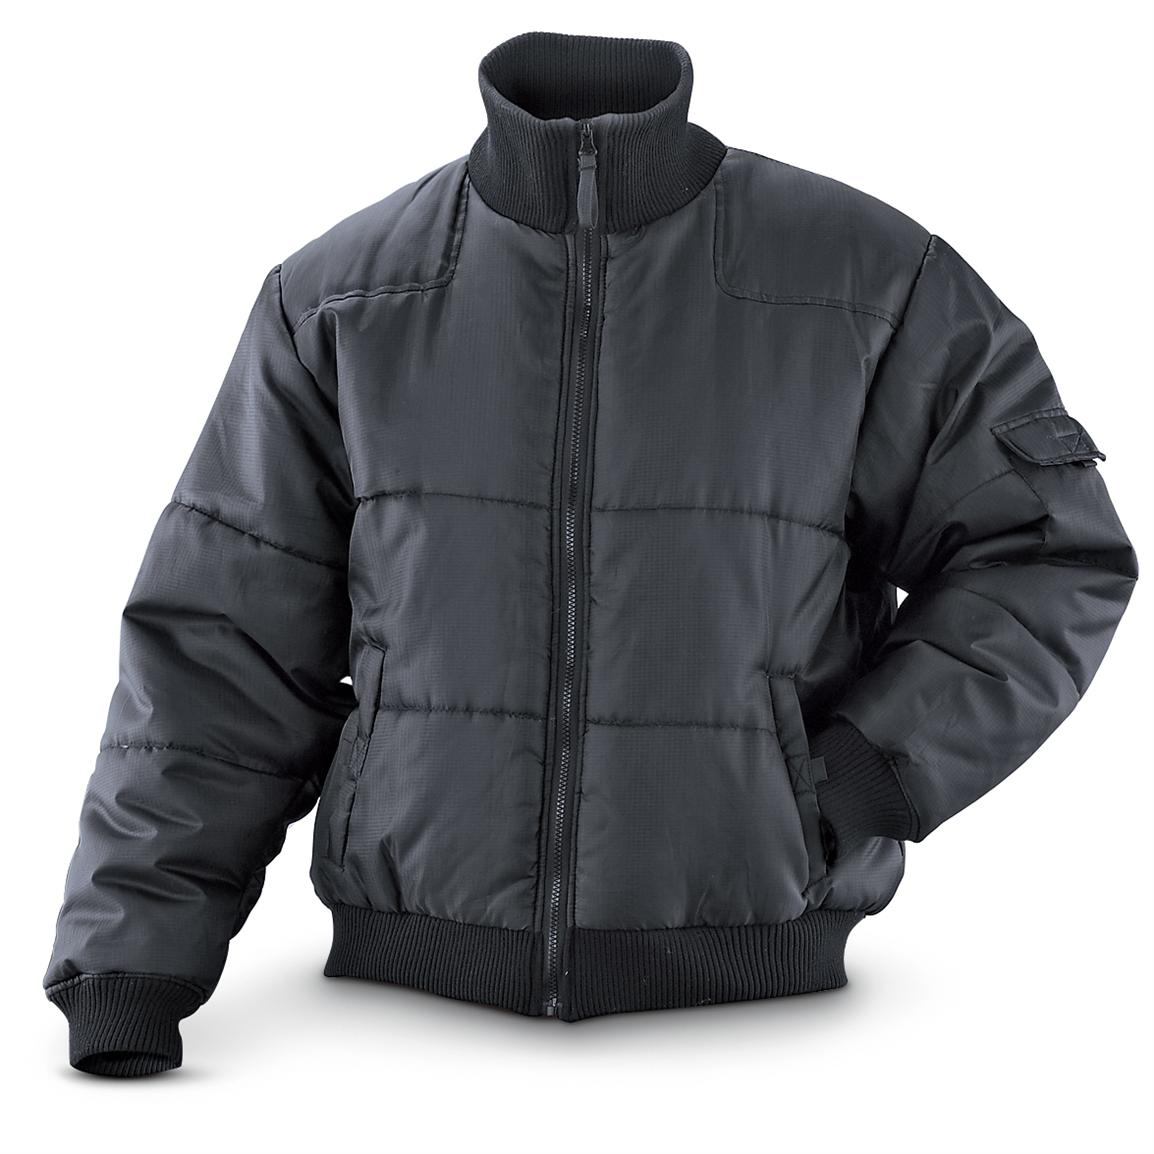 WestWind® Ripstop Bomber Jacket, Black; Ripstop fabric wears well and looks great!